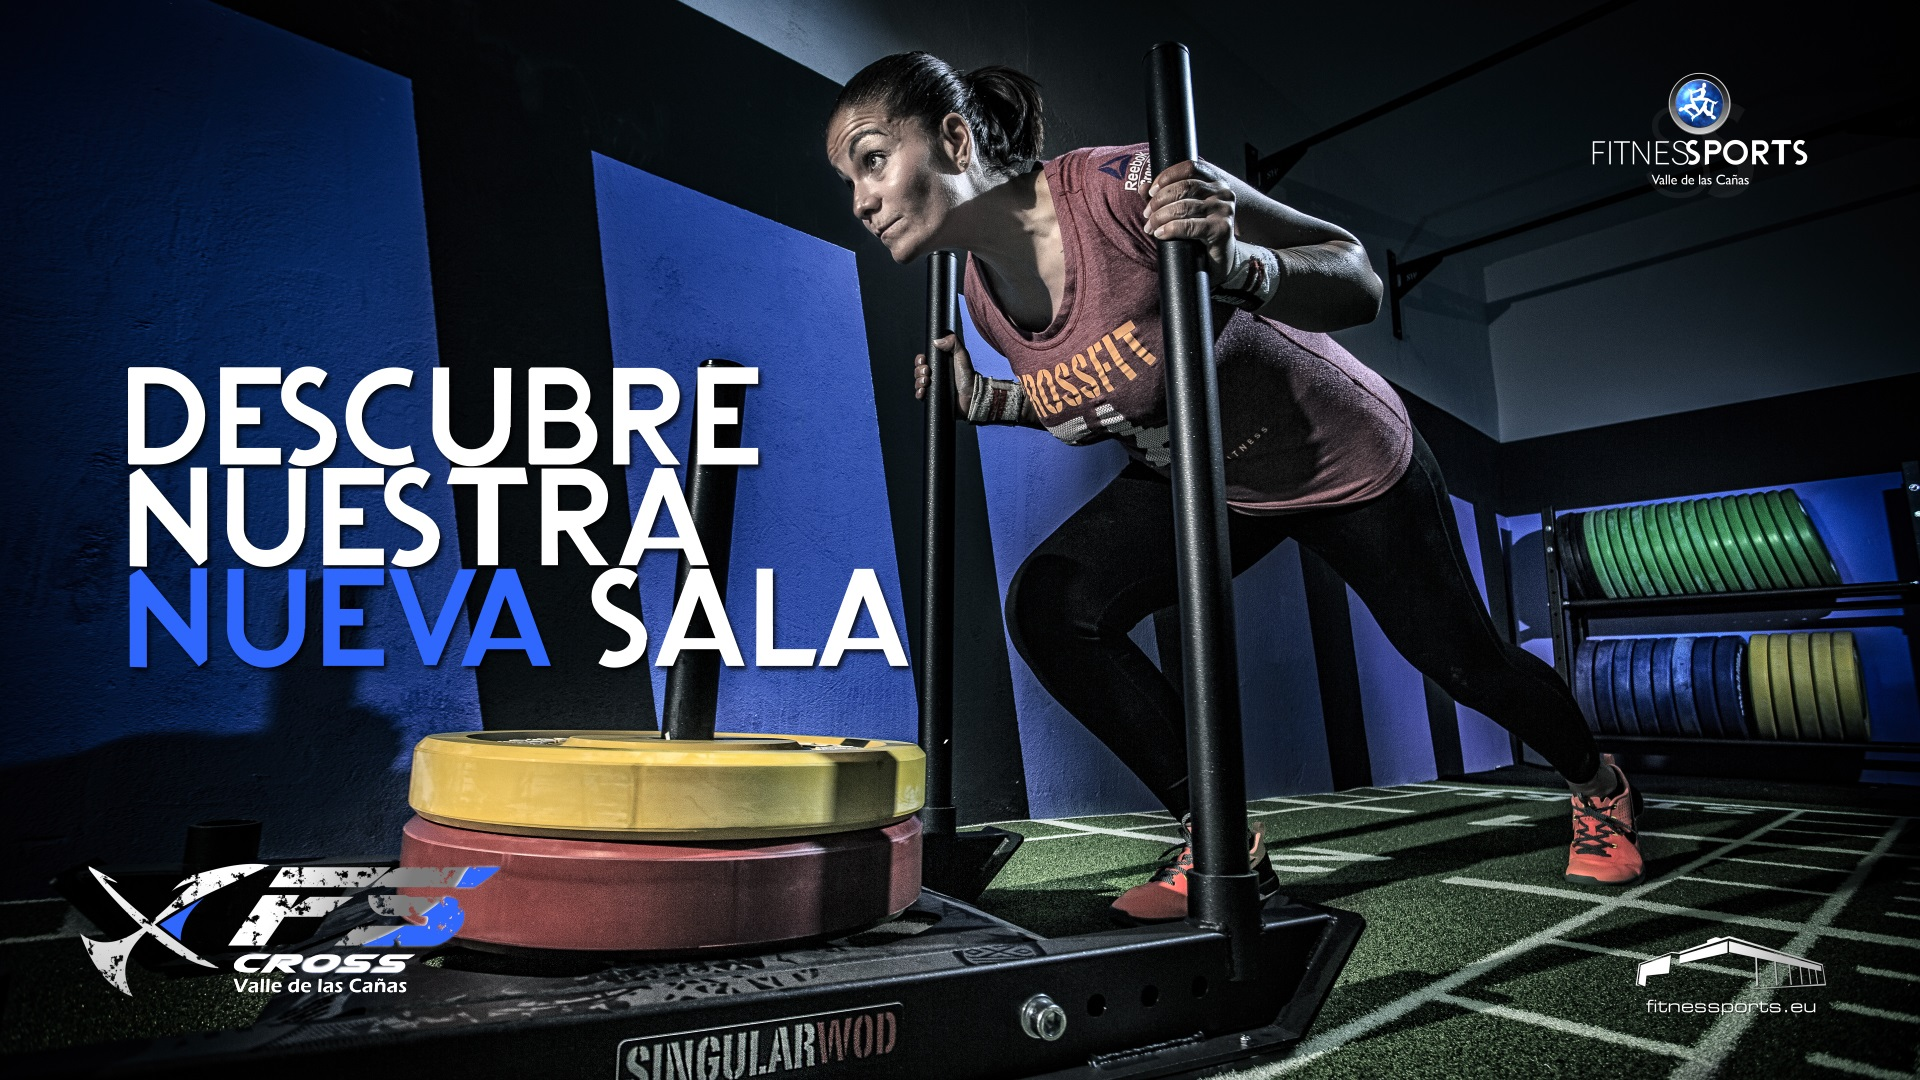 https://perfectpixel.es/wp-content/uploads/2018/04/Nuevo-box-Crossfit-FS-Cross-Training-Valle-de-las-Ca%C3%B1as-Perfect-Pixel-Publicidad-3.jpg